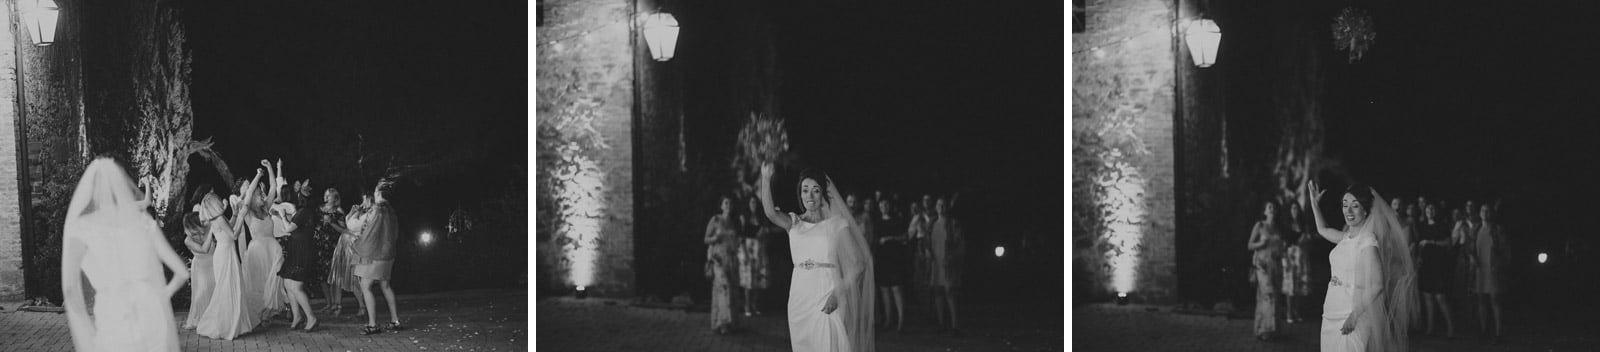 104-wedding-tuscany-san-galgano-federico-pannacci-photographer